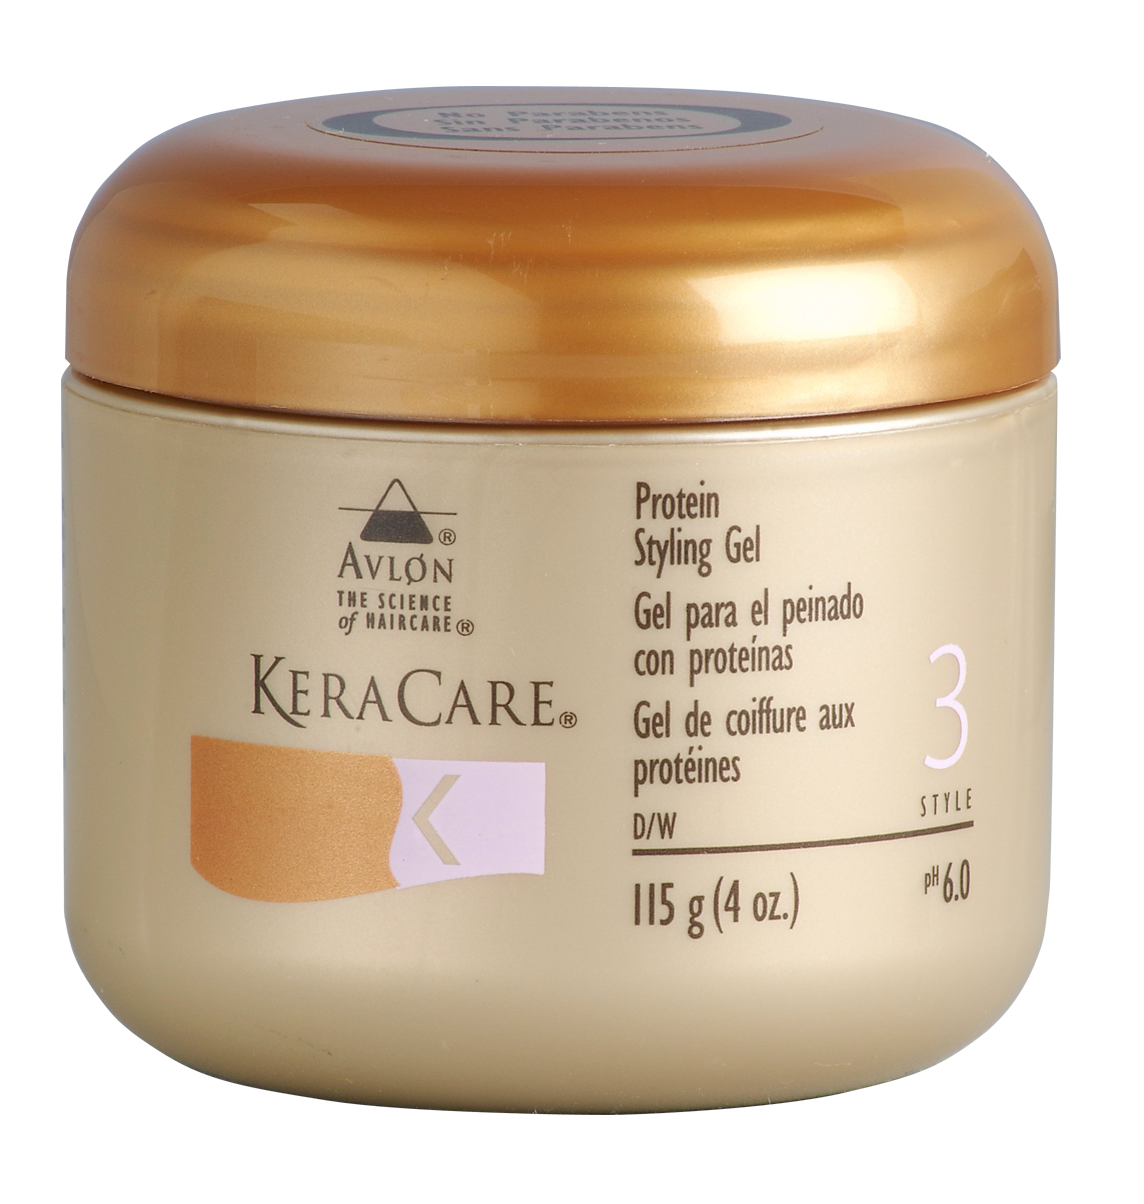 KeraCare® Protein Styling Gel